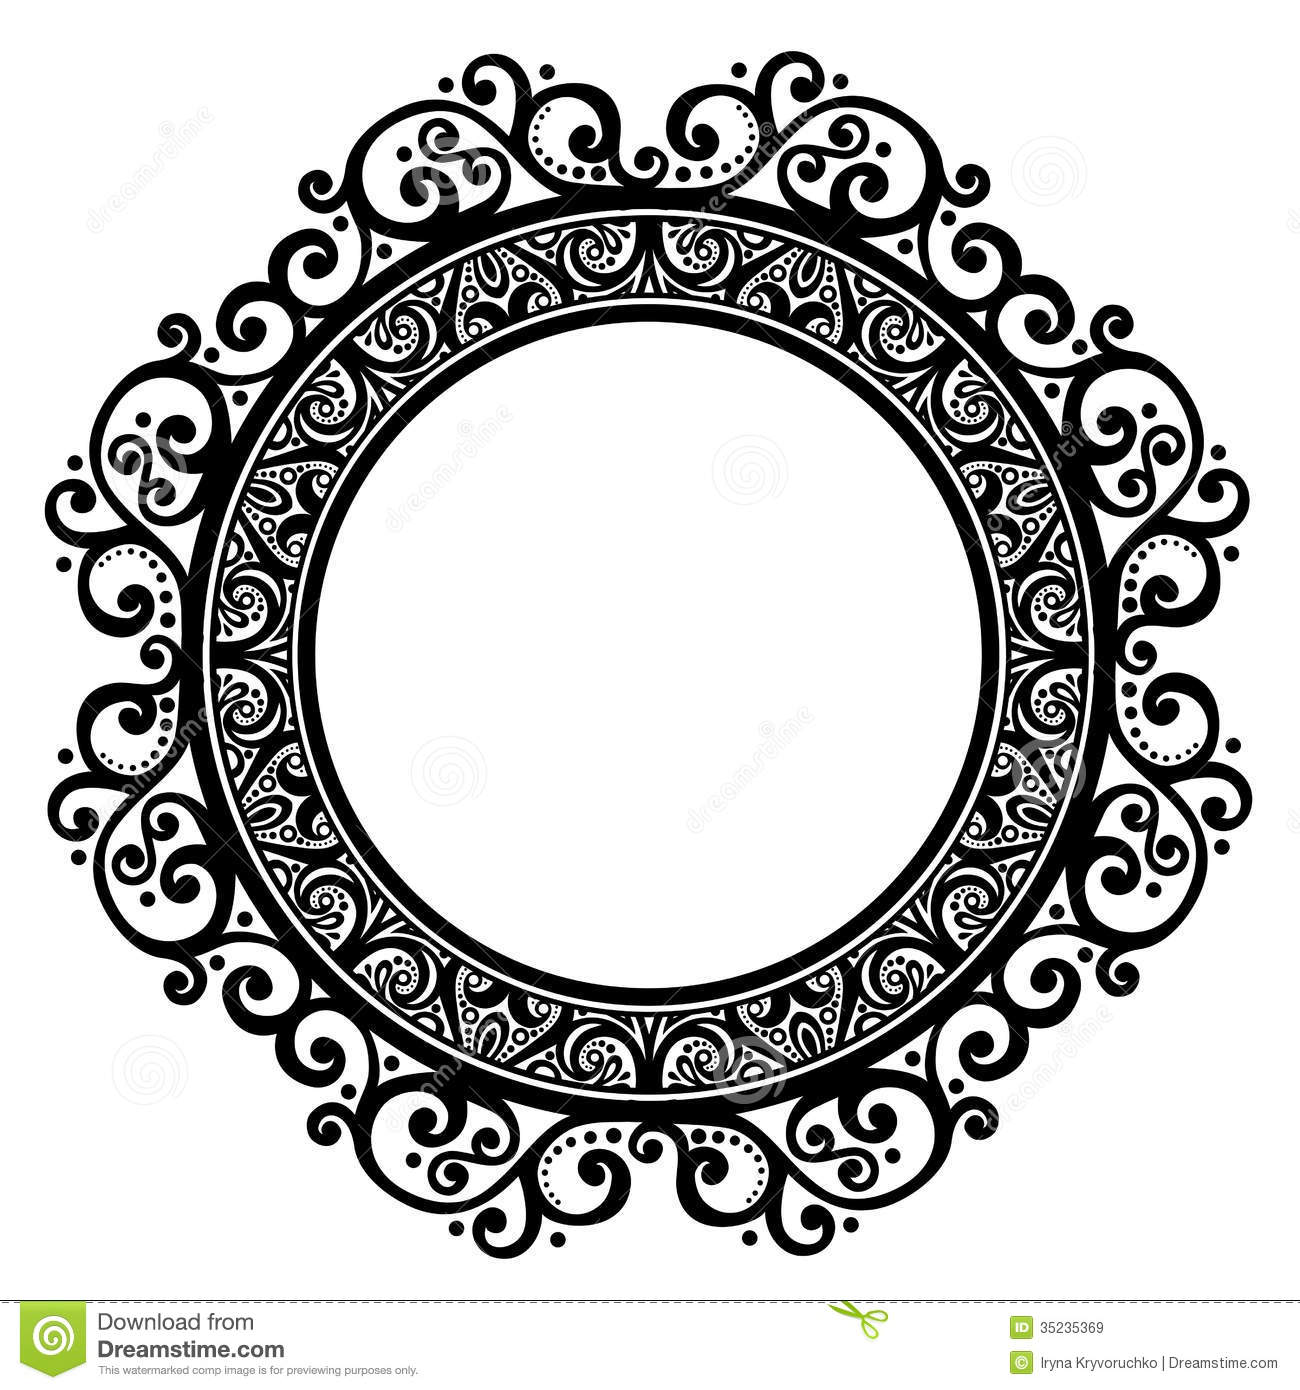 10 free vector ornate circle frame images floral decorative vector